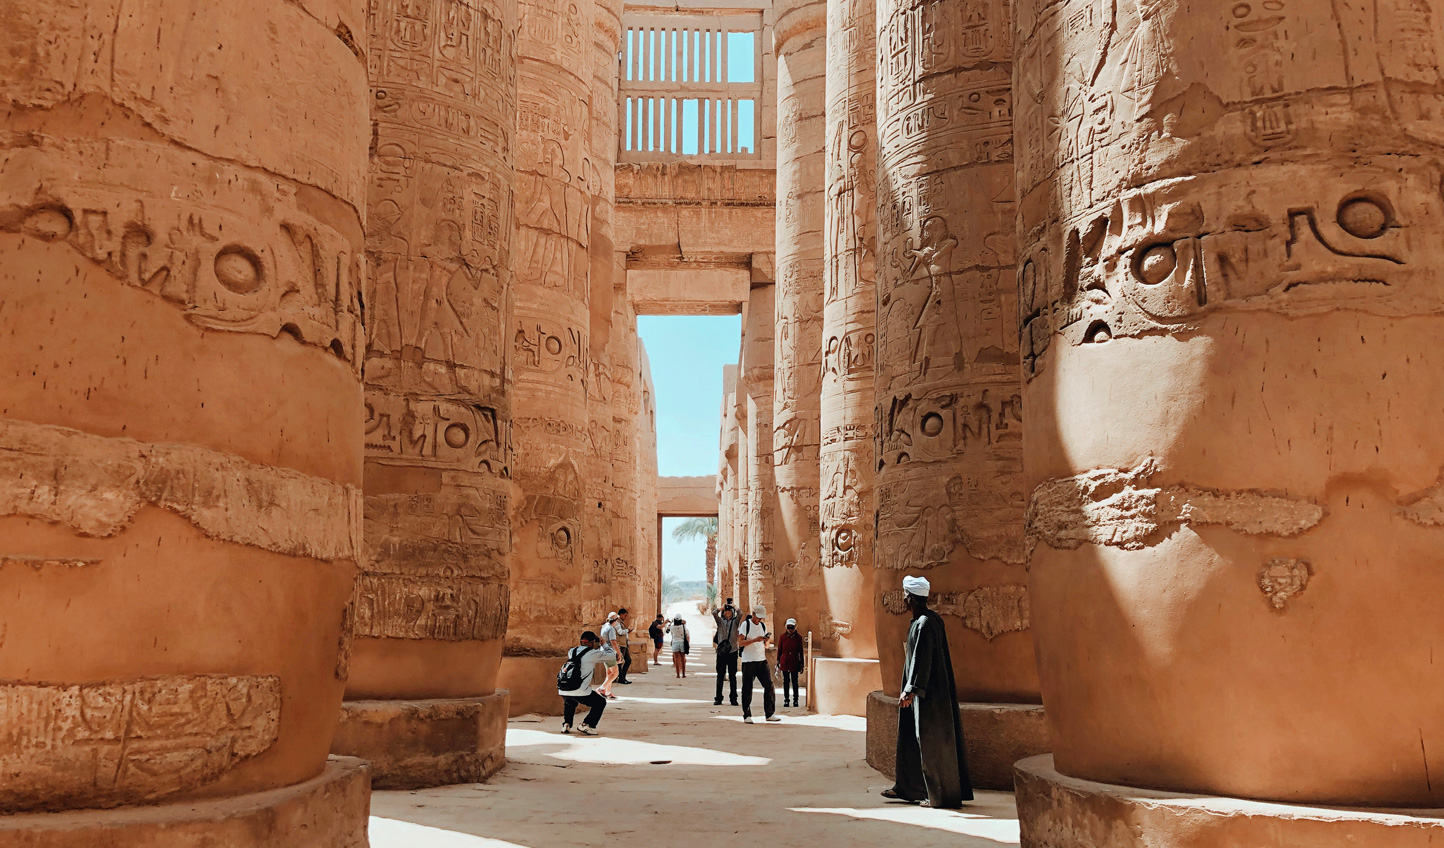 Stroll speechless through Egypt's mighty temples...